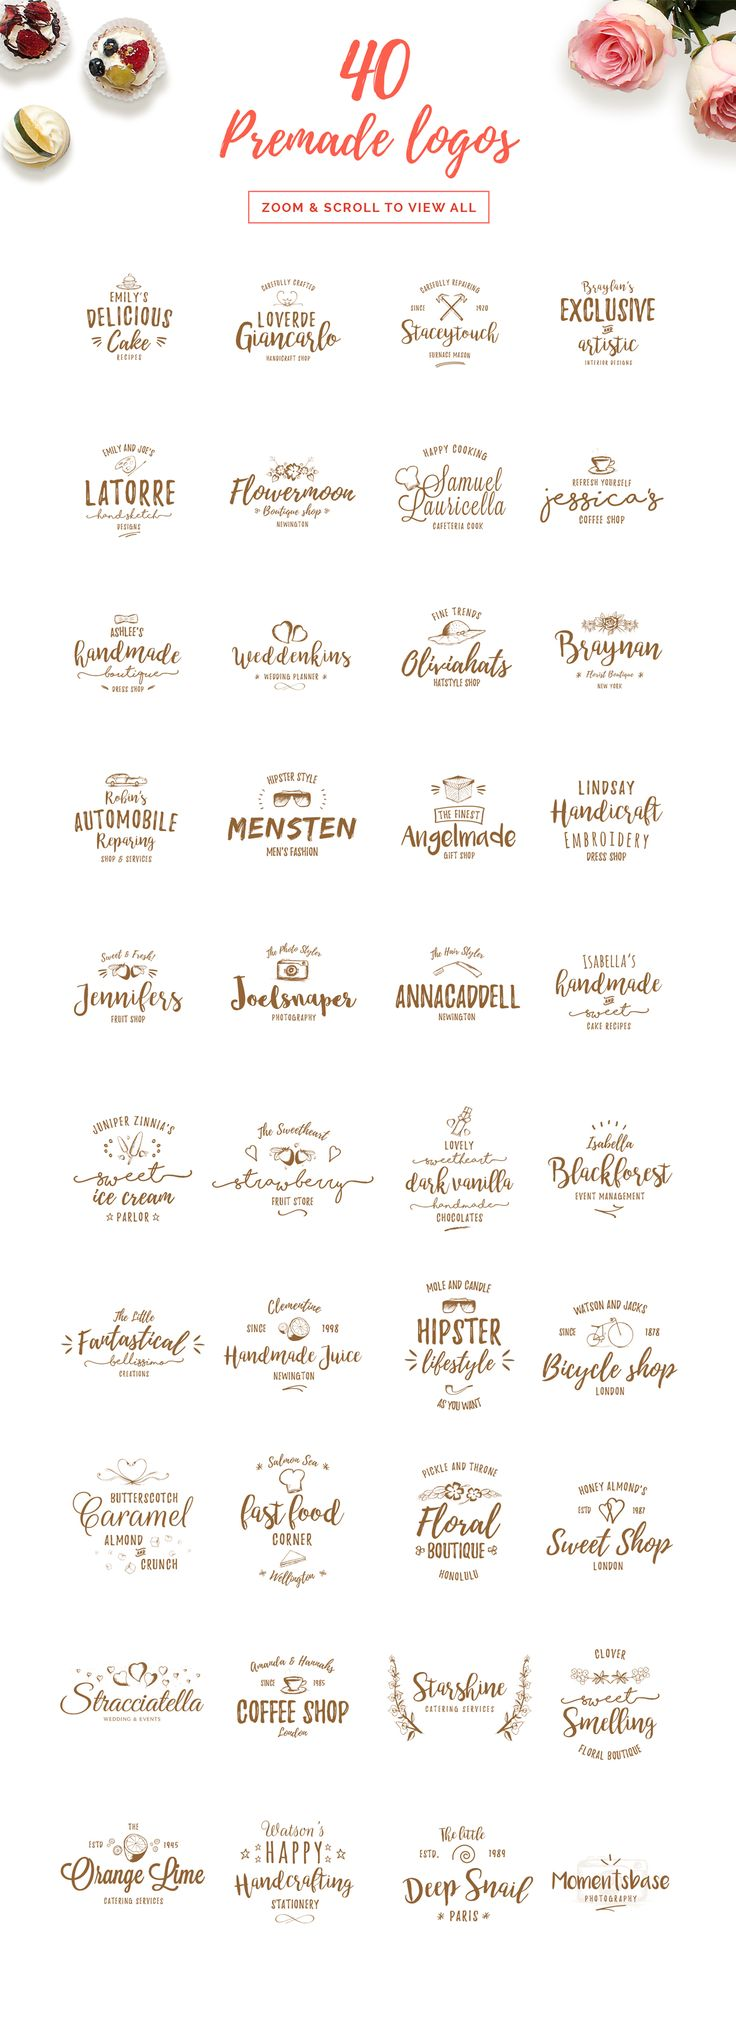 IN LOVE with all these minimal and feminine premade logo design templates. Perfect for graphic design and your personal identity branding!